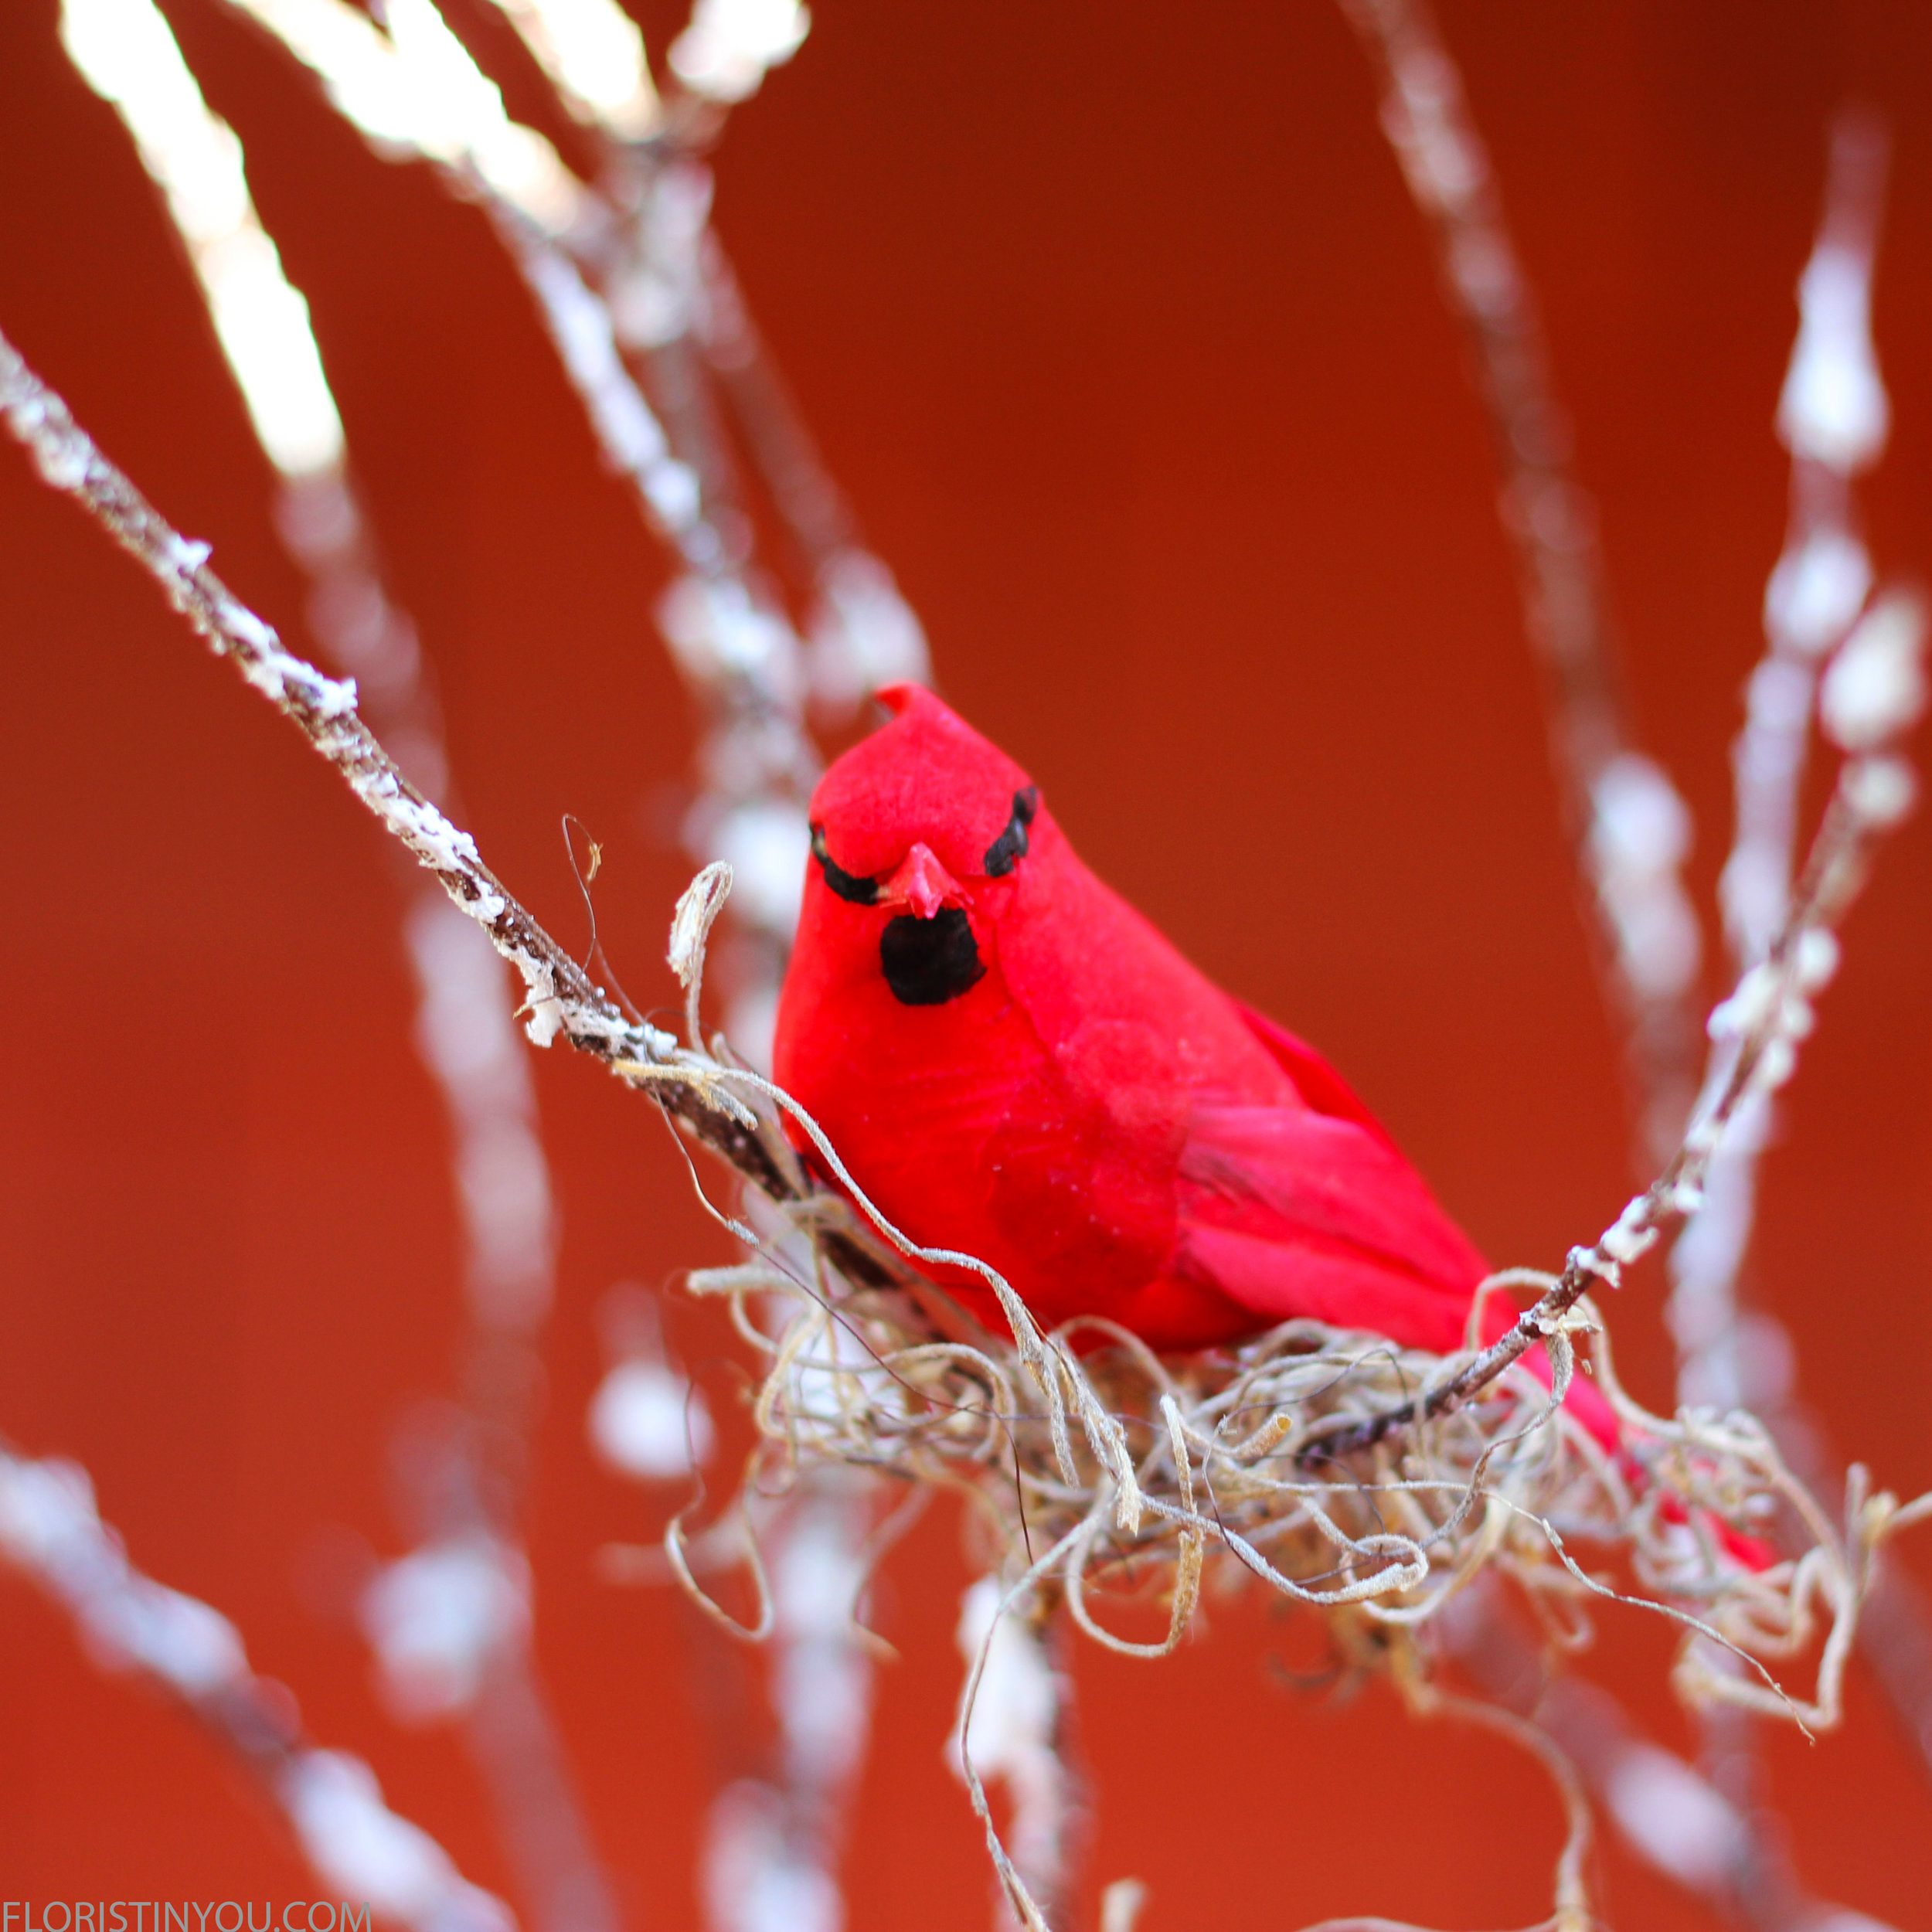 Add pinch of Spanish Moss and glue 2 birds onto branches.